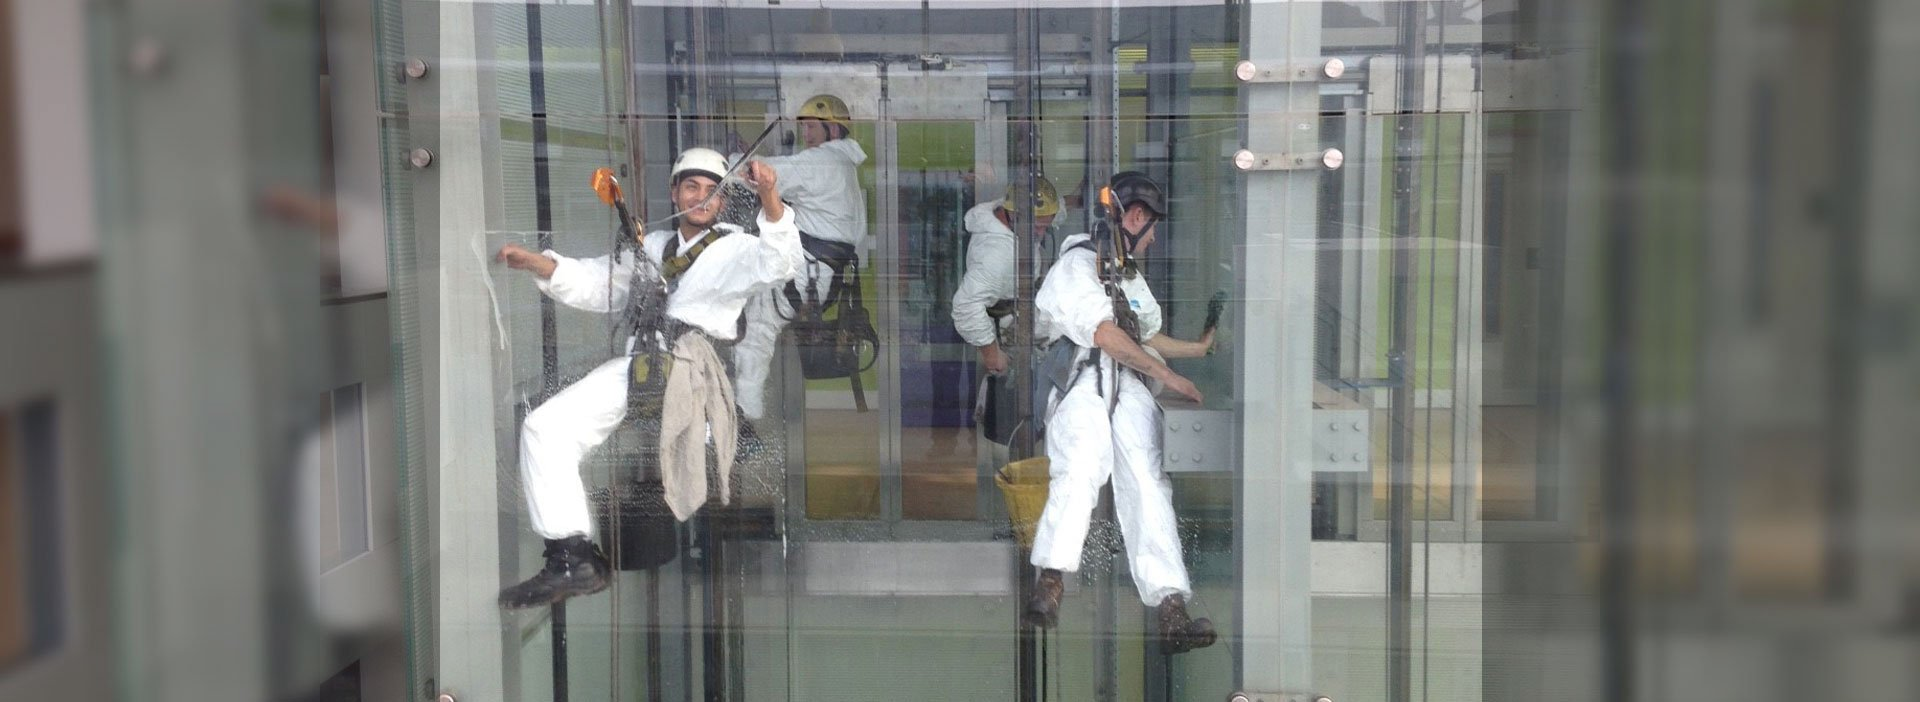 Abseiling cleaning